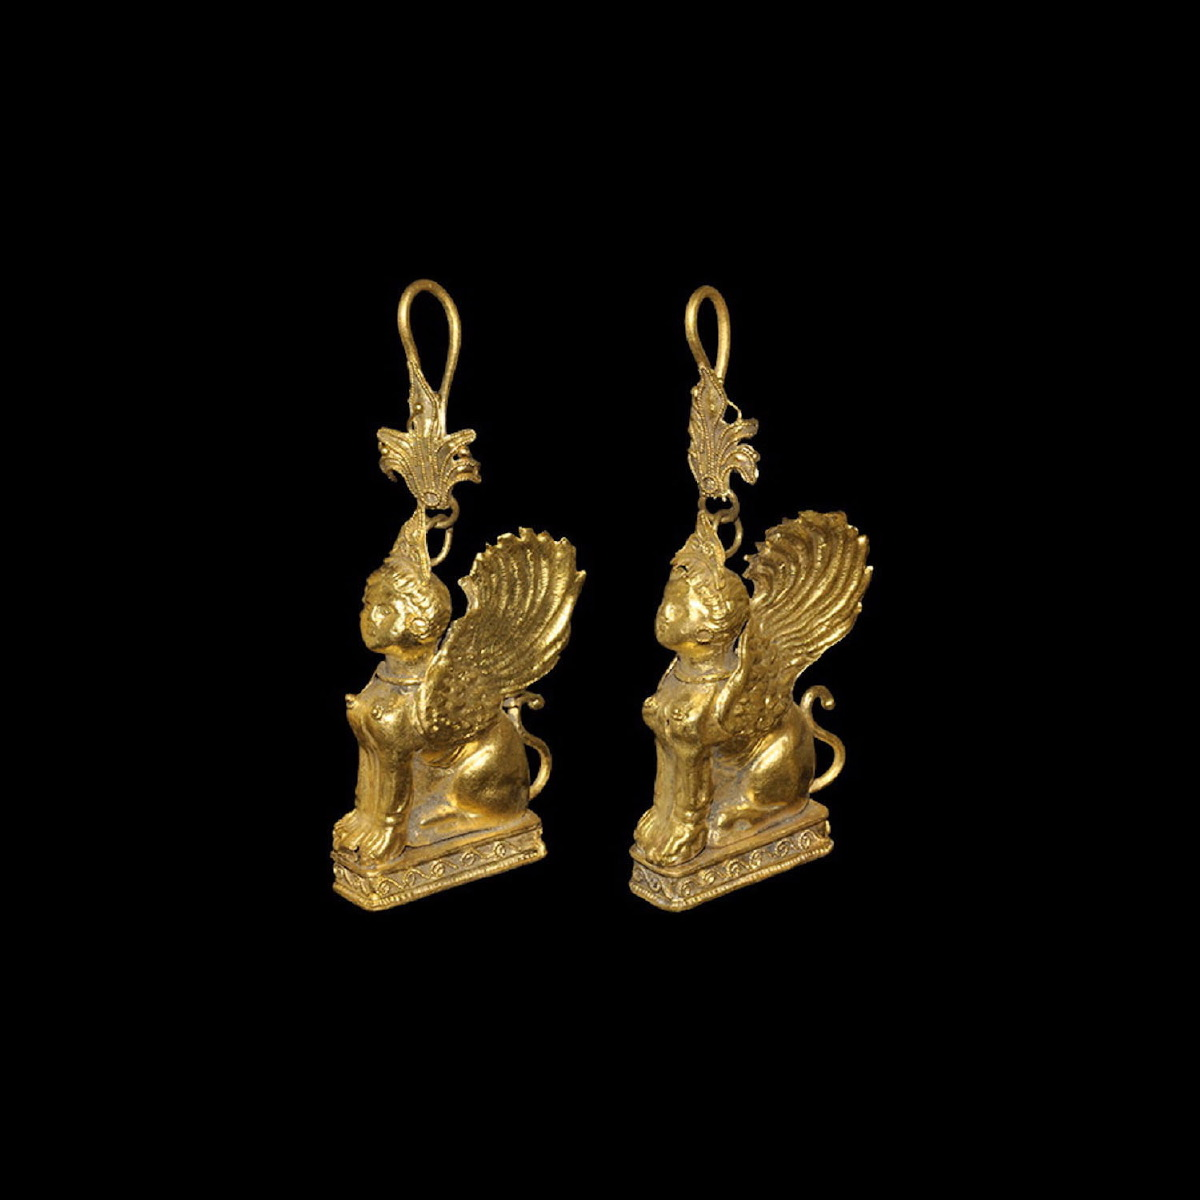 Photo ofRARE GOLD EARRINGS WITH SPHINX FROM ANCIENT GREECE